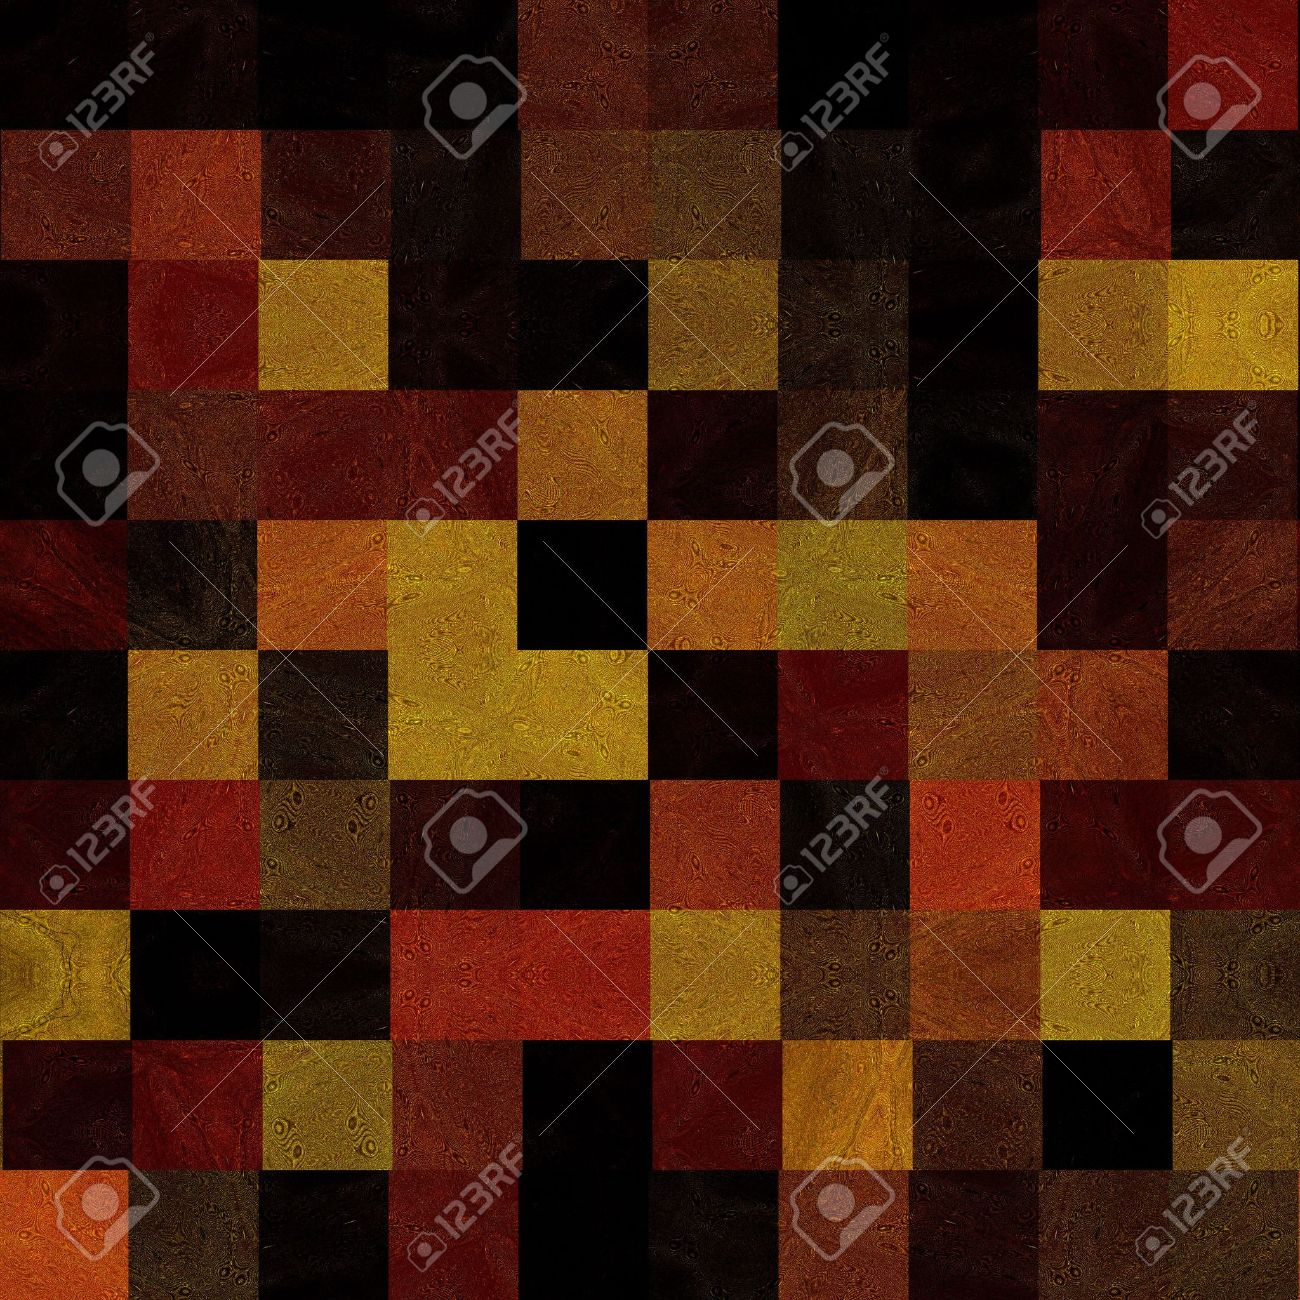 Earthy Colors rich, earthy colors tile mosaic seamless stock photo, picture and